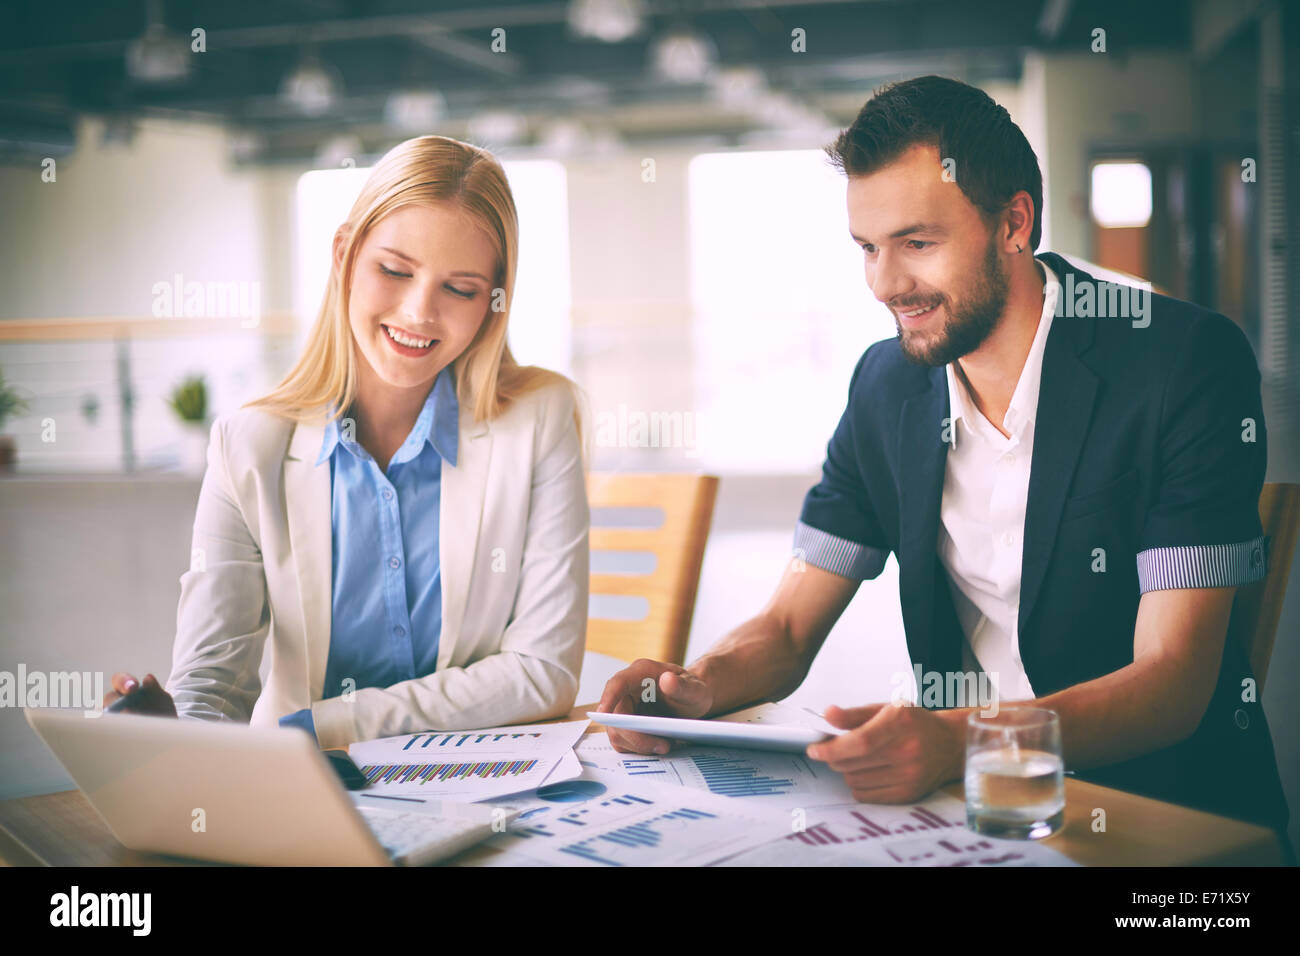 Friendly managers analyzing electronic information at meeting - Stock Image